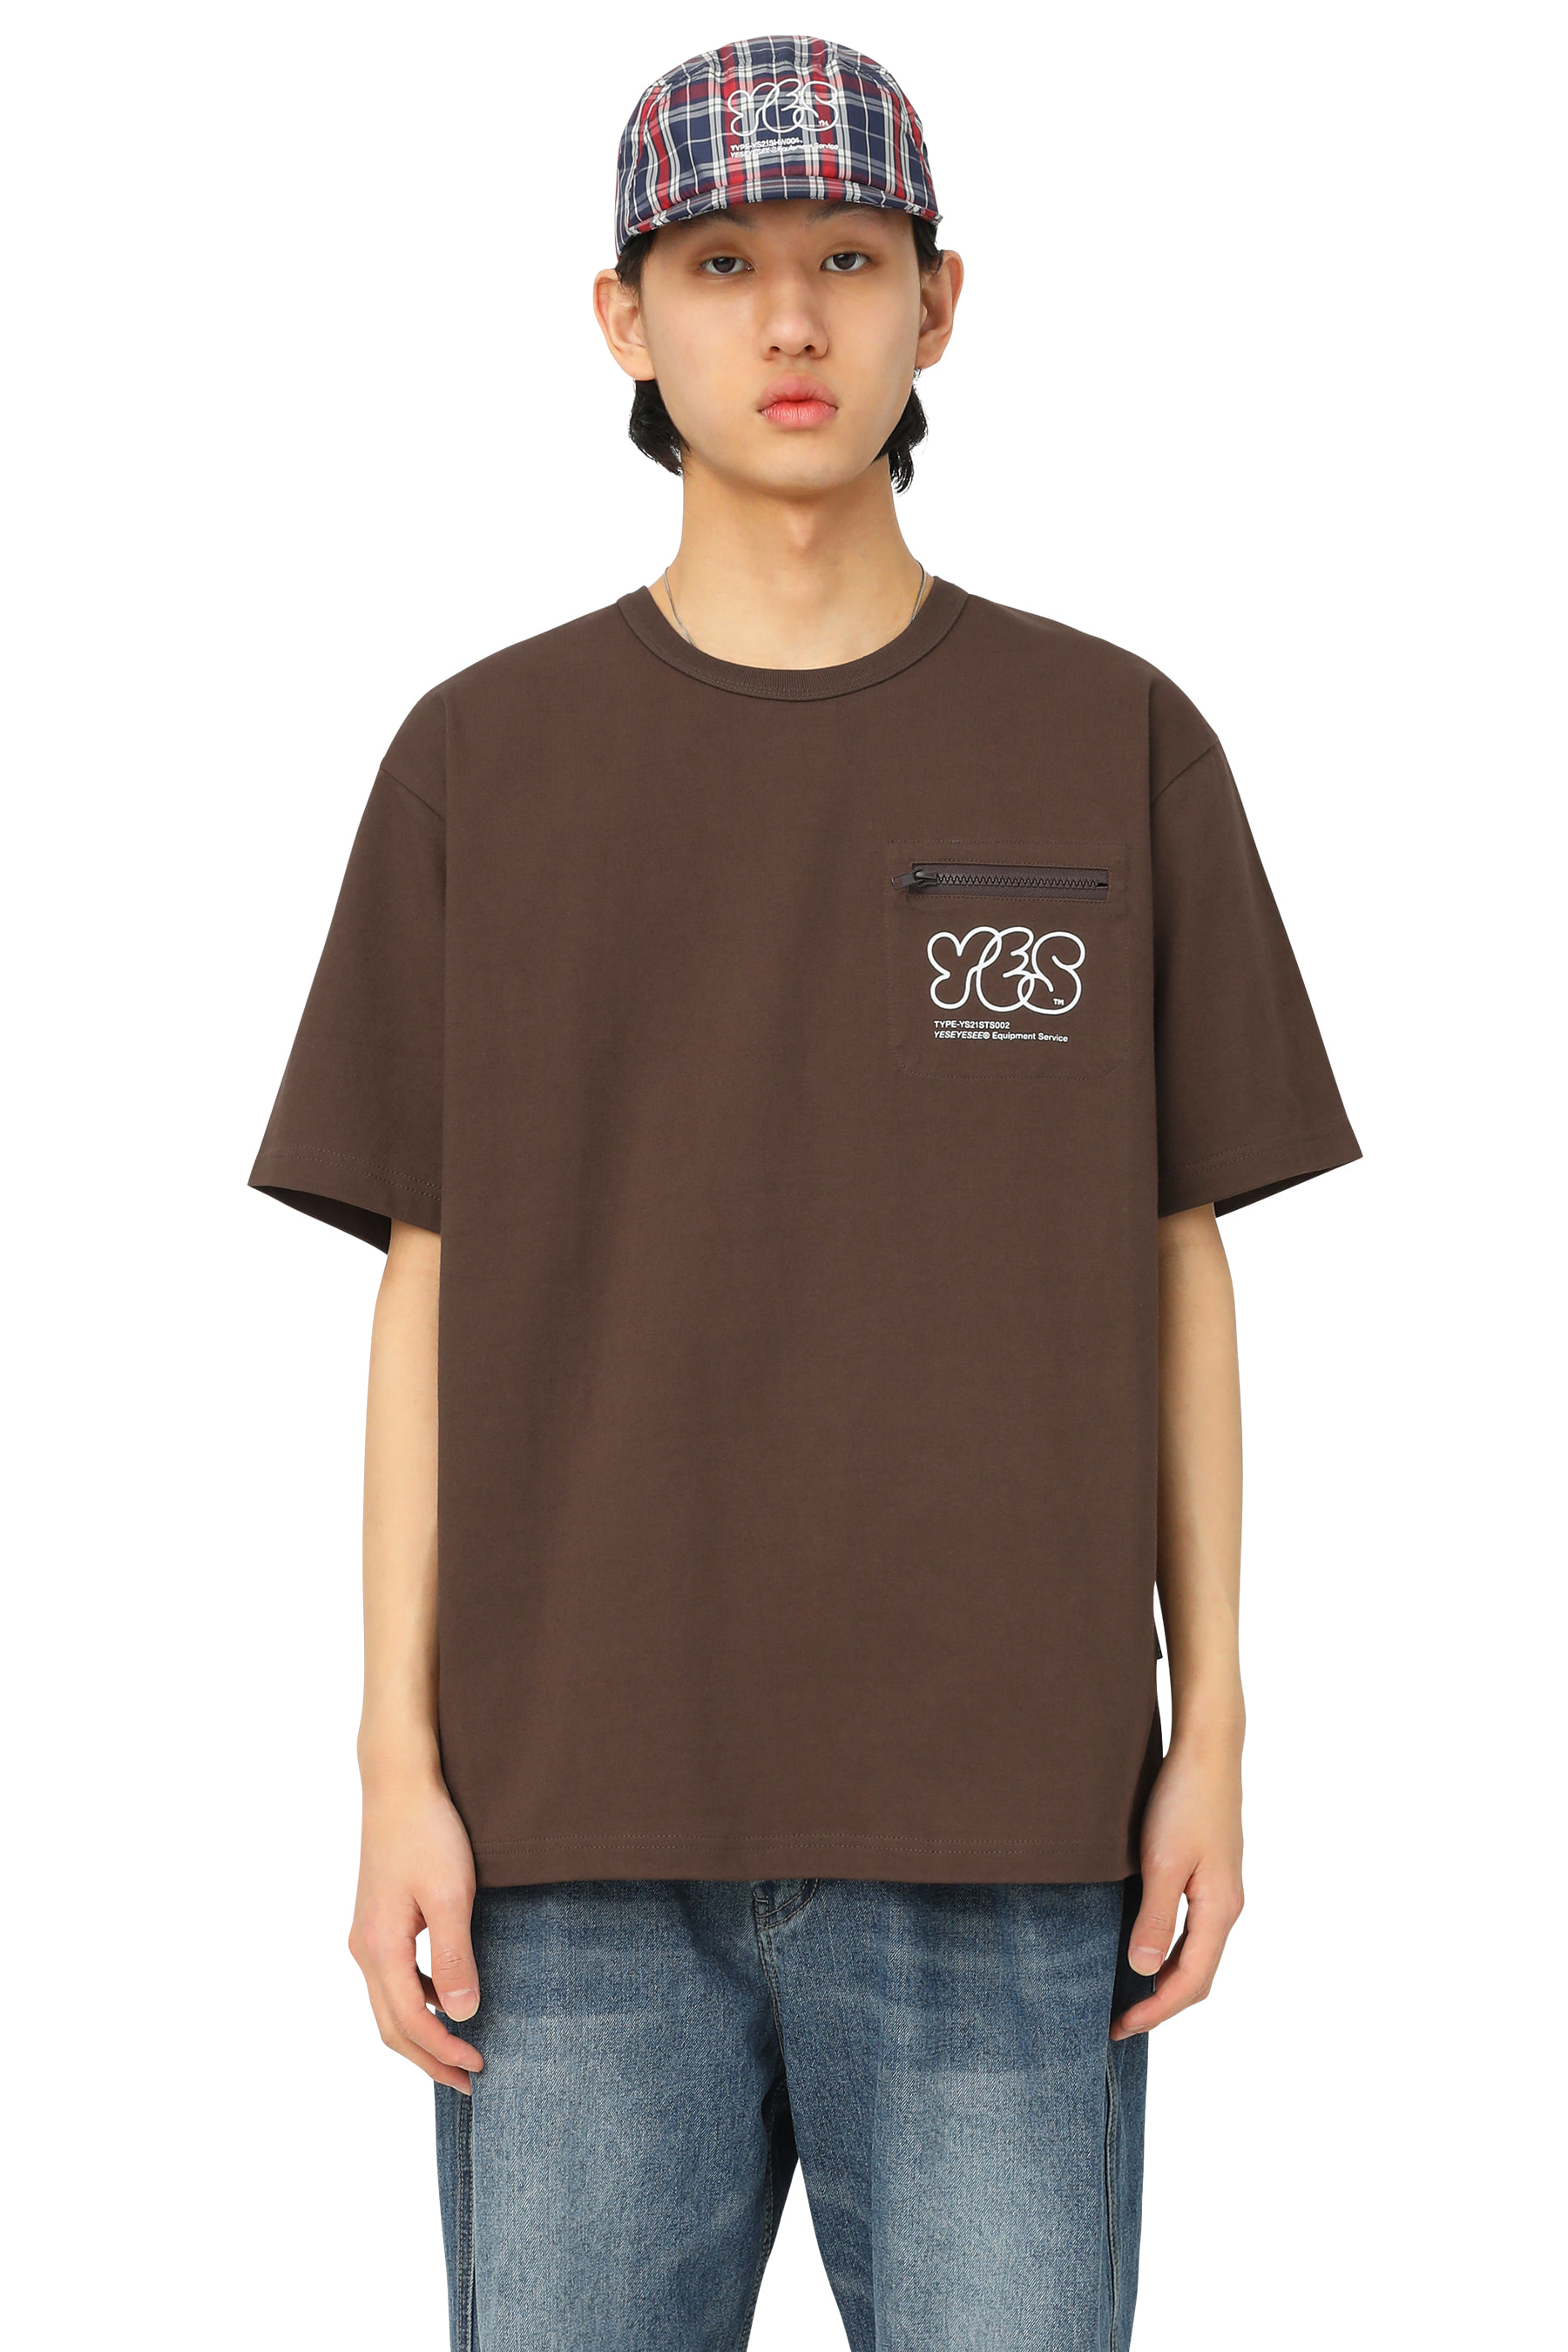 Y.E.S Pocket Tee Brown